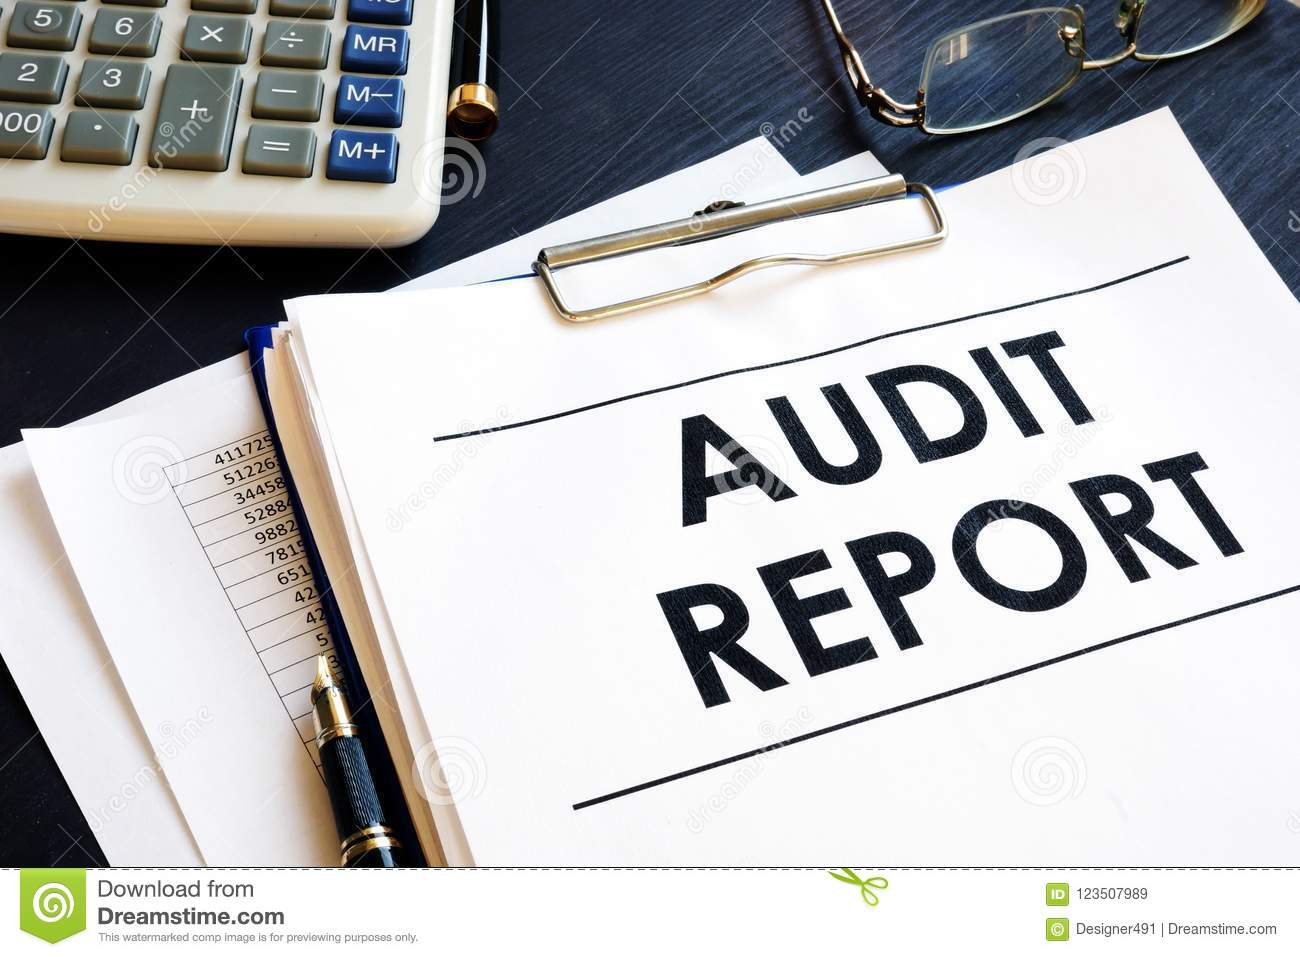 Audit report with business documents in an office.